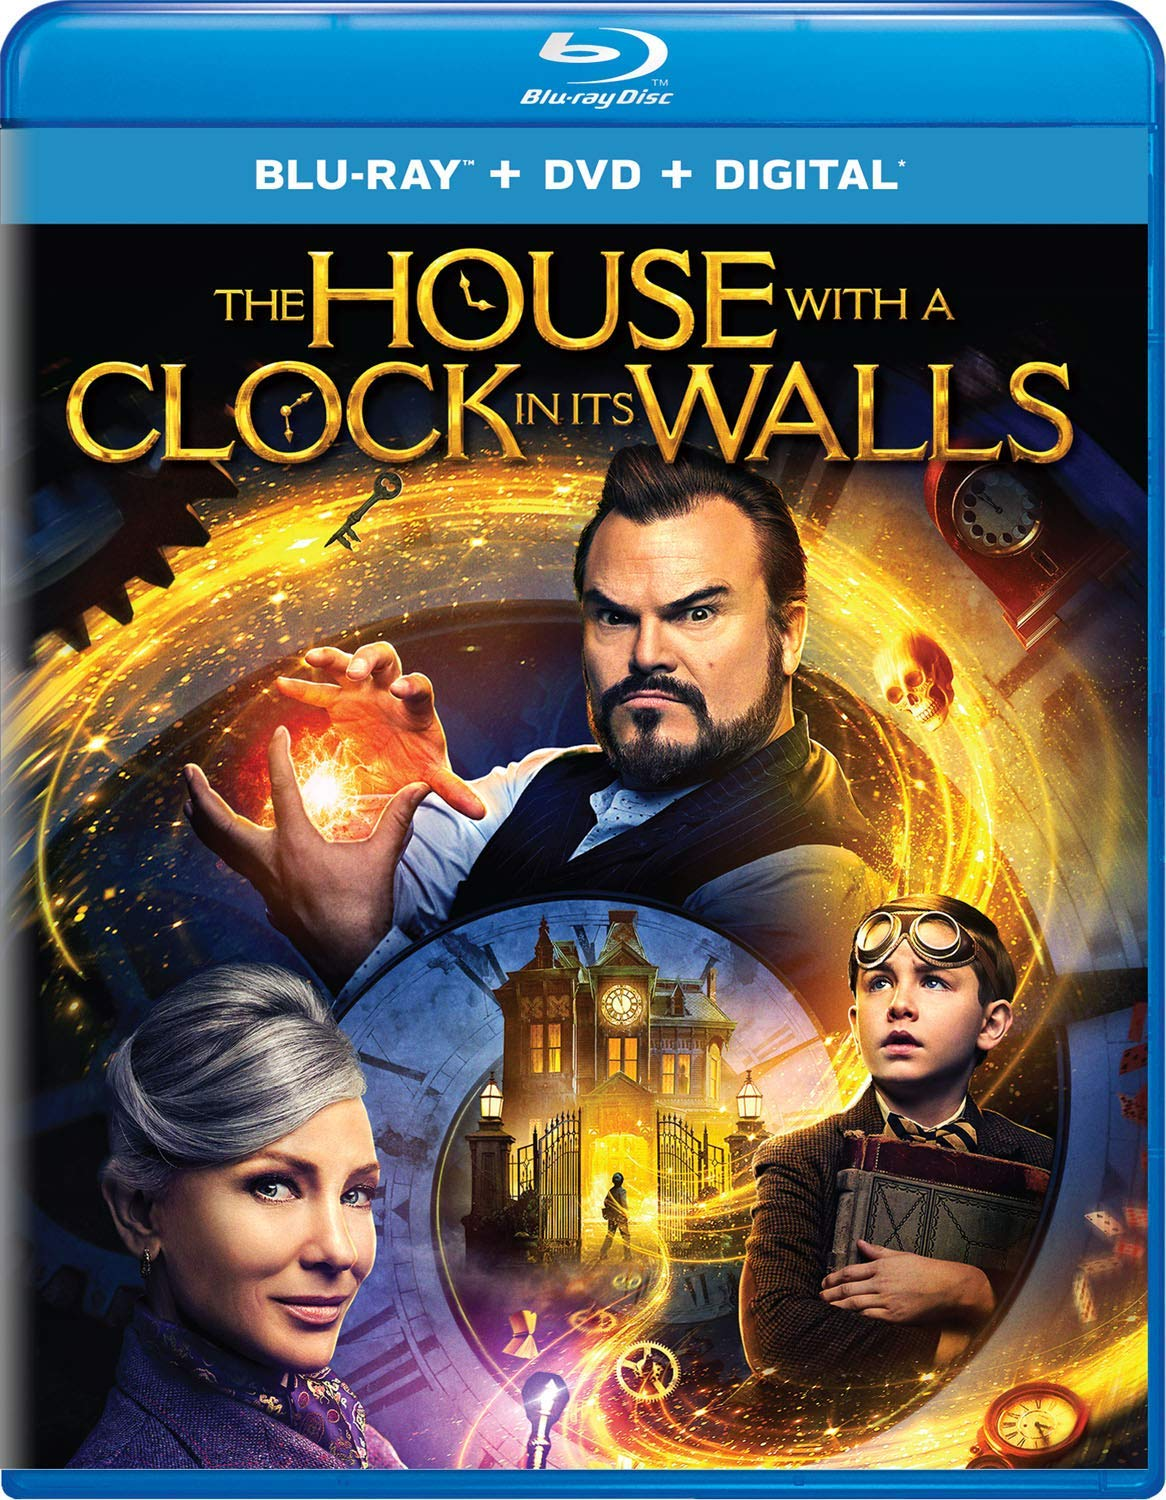 The House With a Clock In Its Walls [Movie]